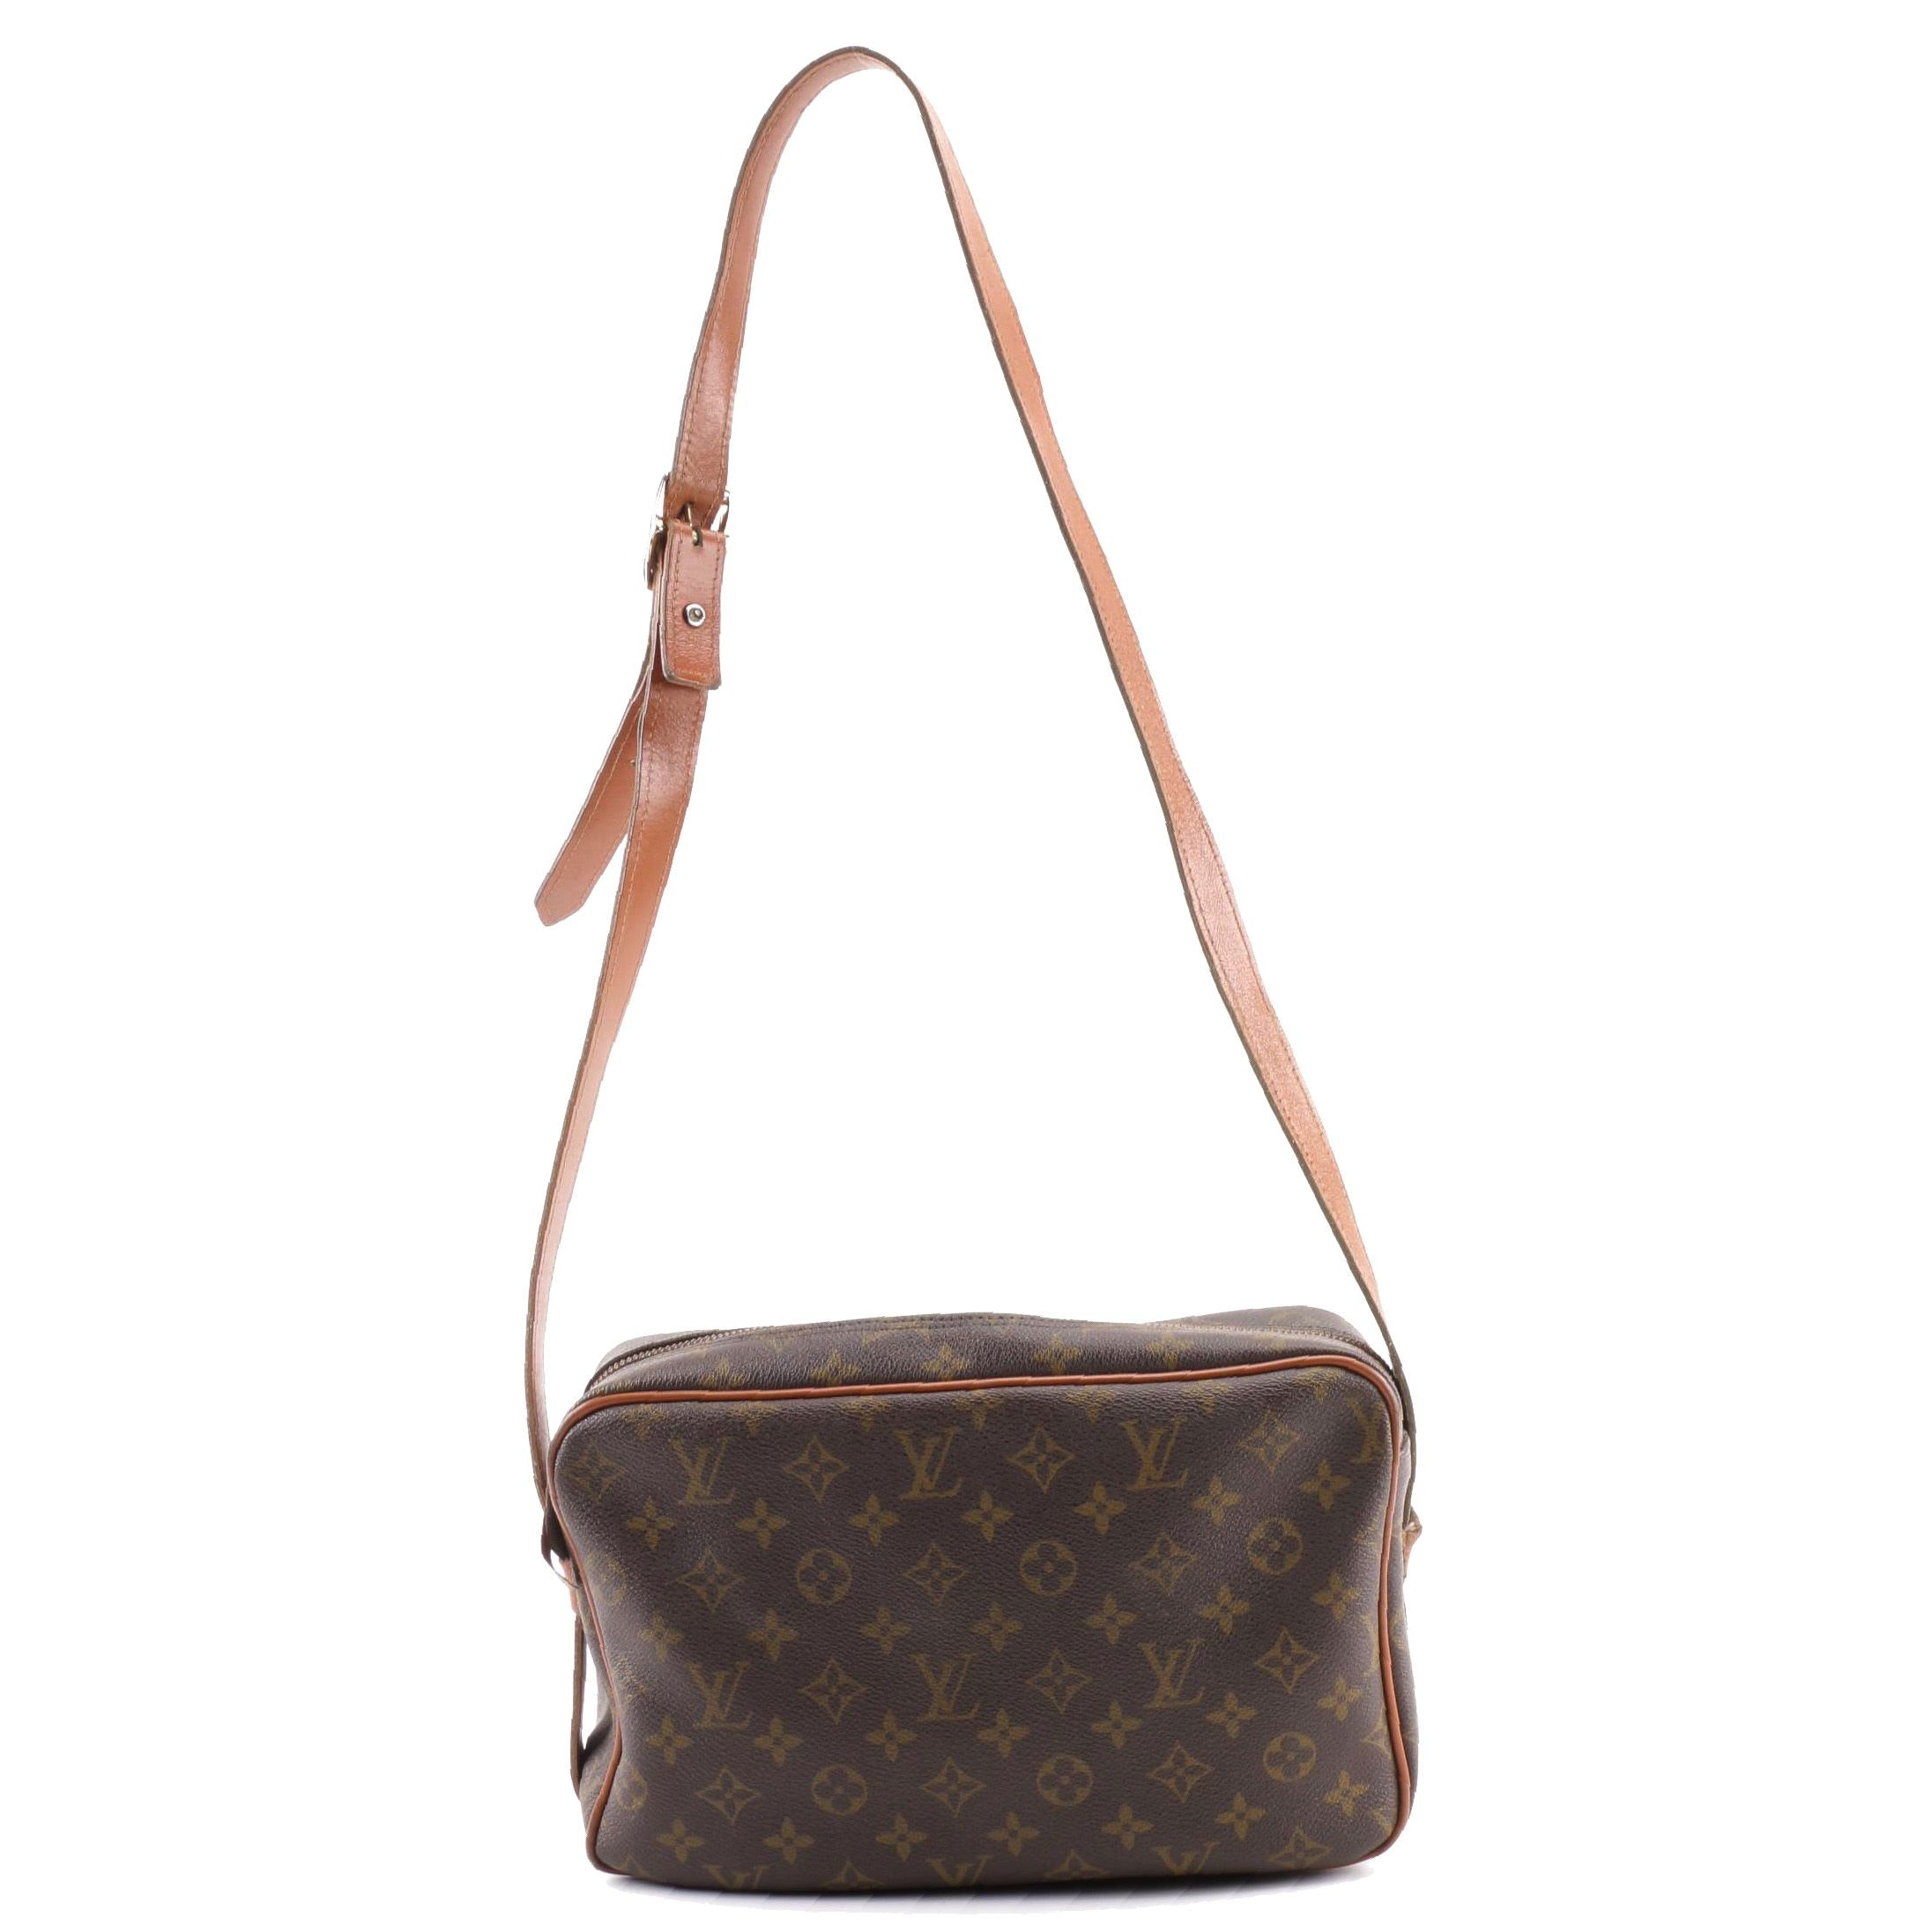 The French Company for Louis Vuitton Bandouliere Monogram Canvas Shoulder Bag